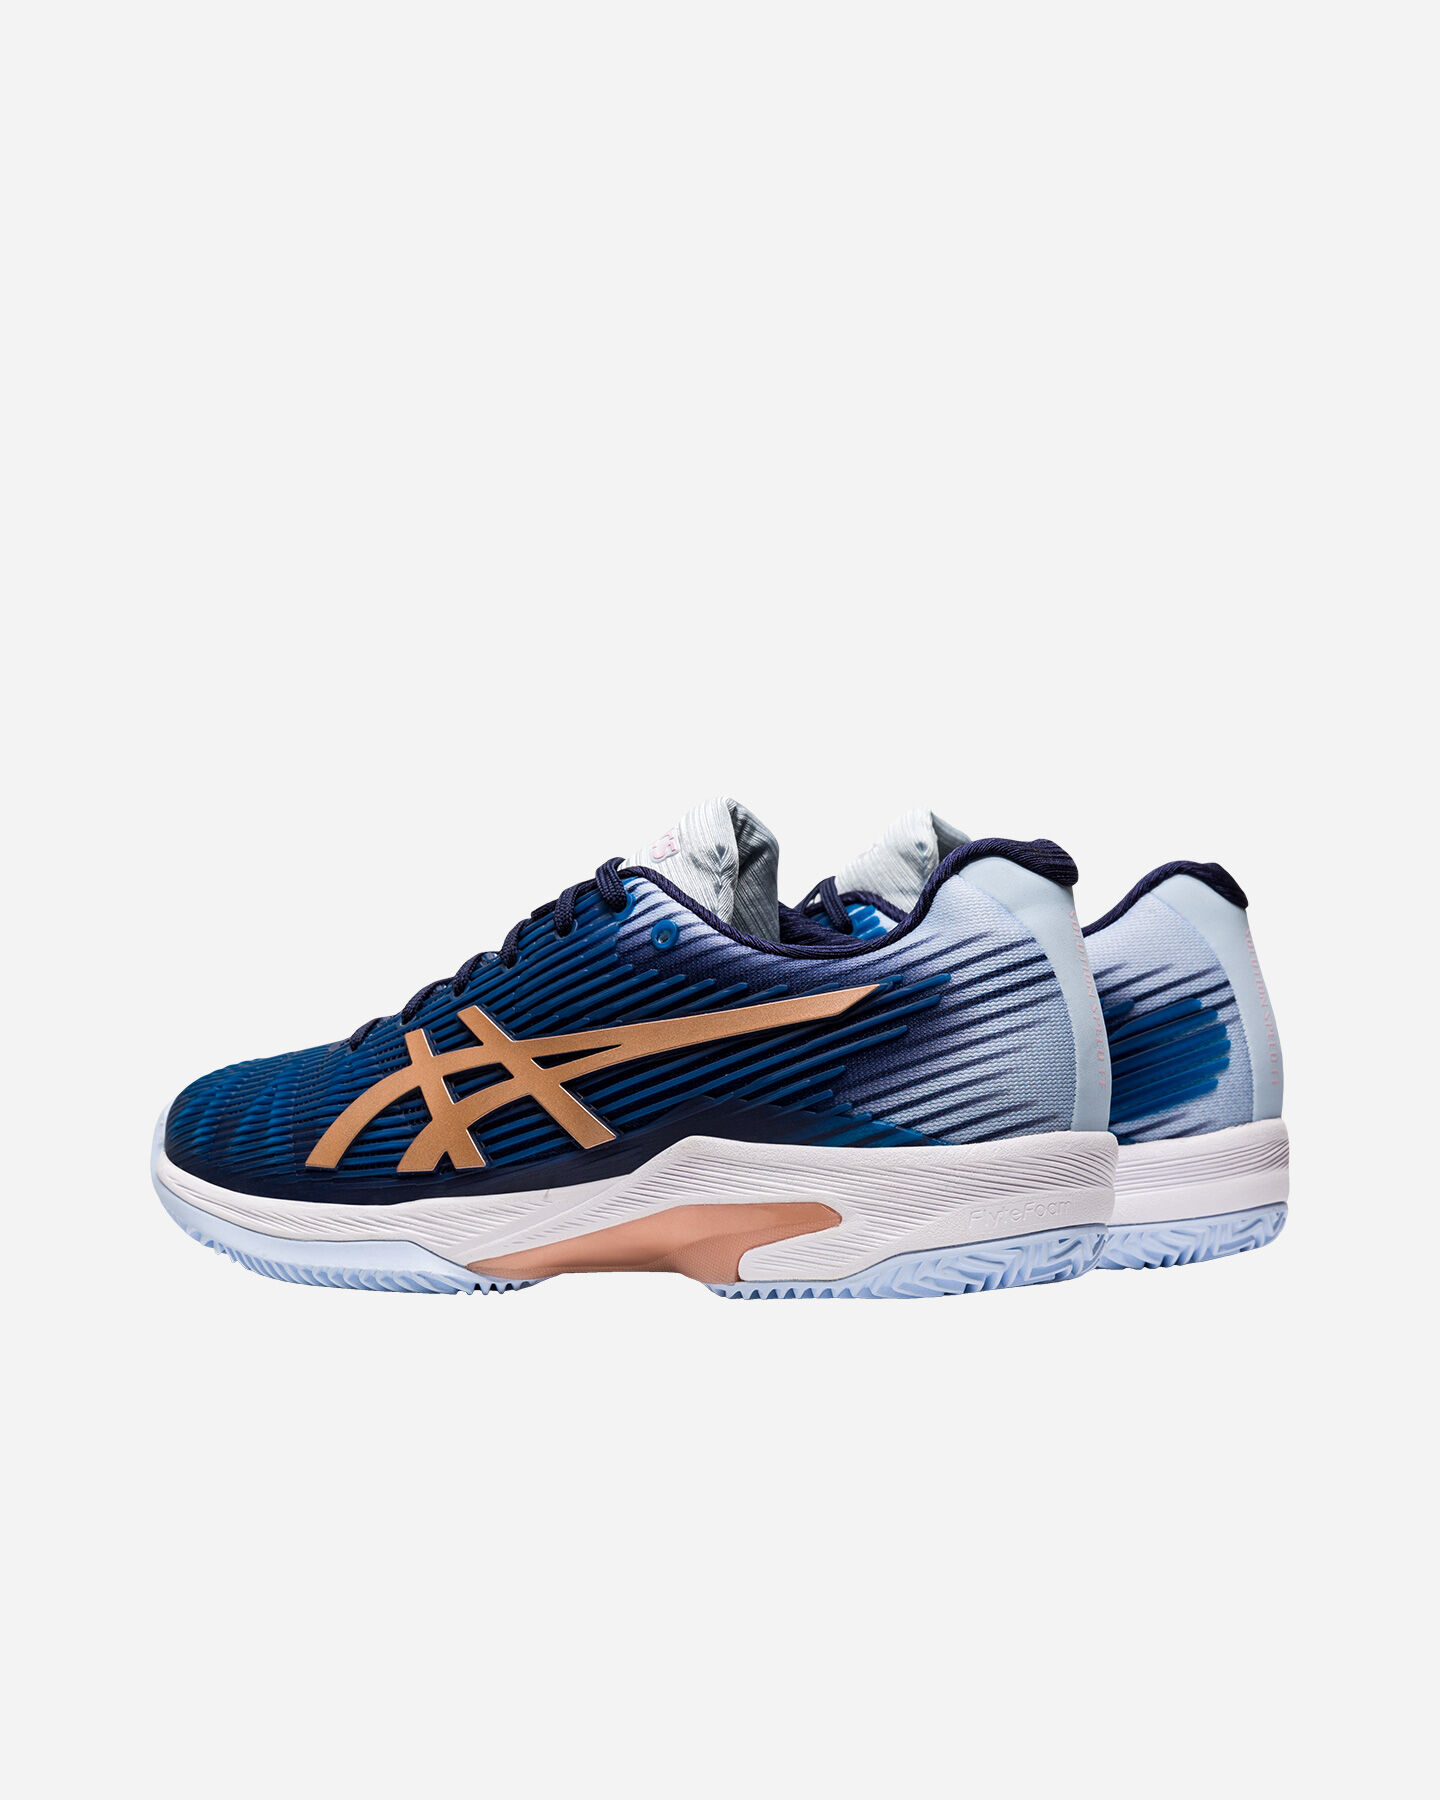 Scarpe tennis ASICS SOLUTION SPEED FF CLAY W S5159469 scatto 2